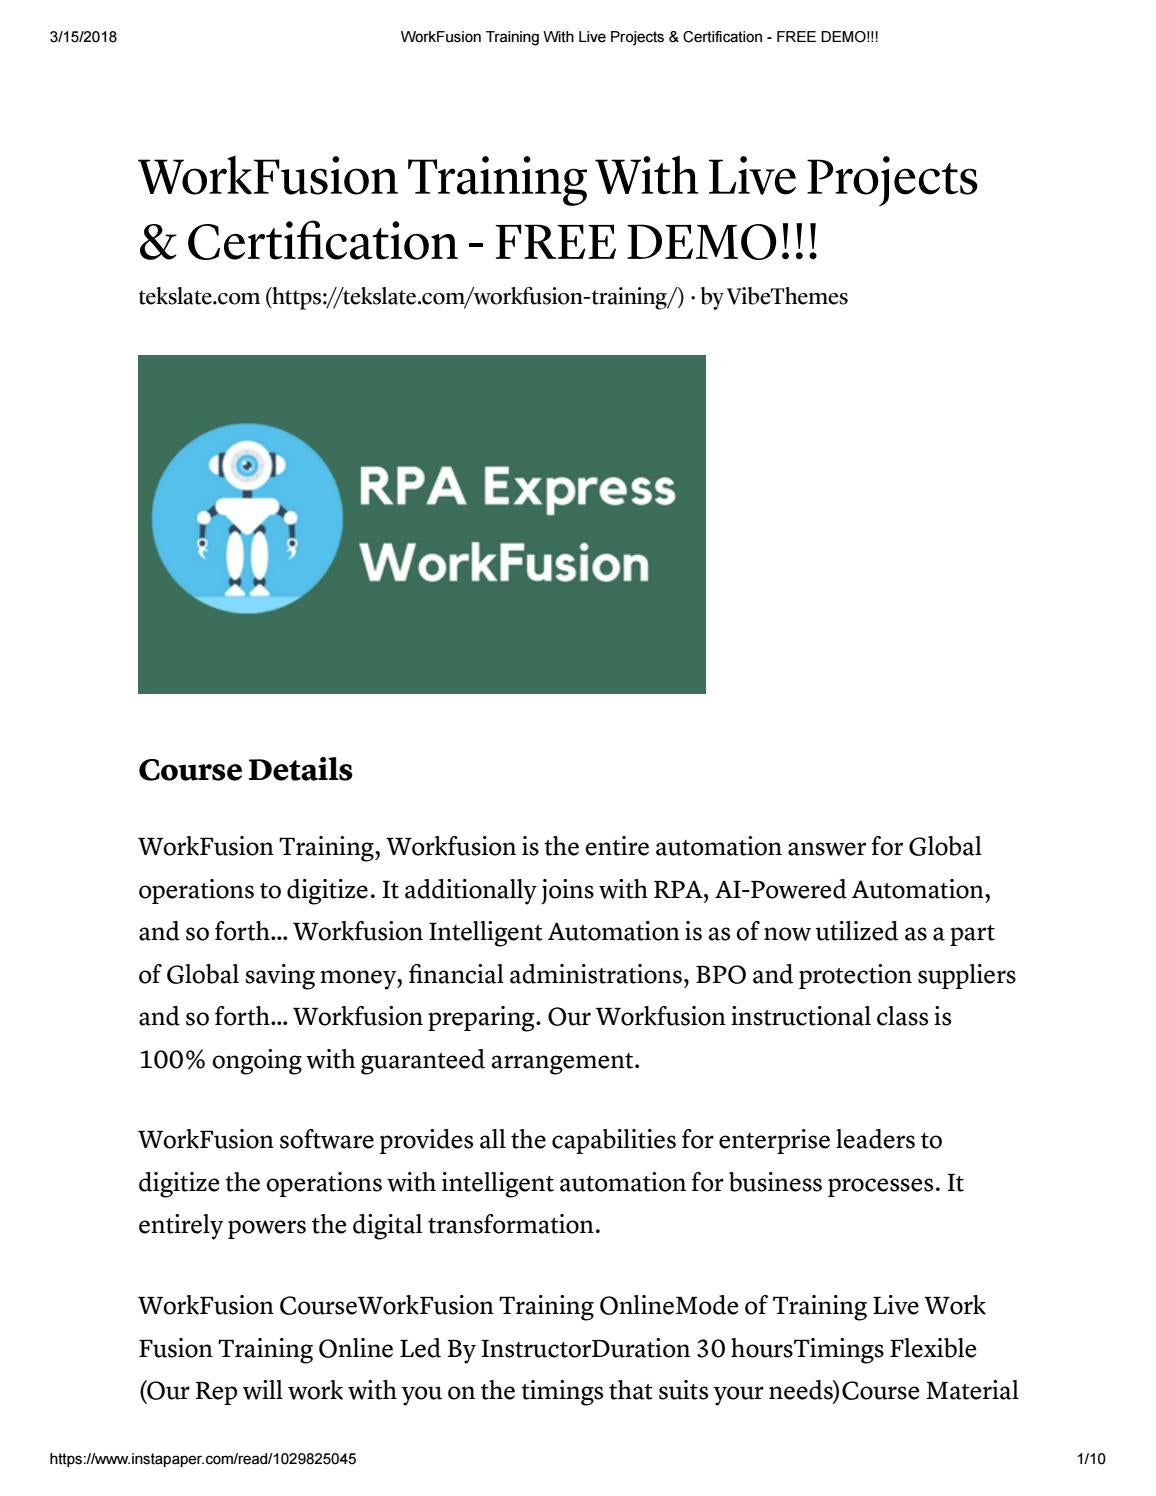 Workfusion Training With Live Projects Certification Free Demo